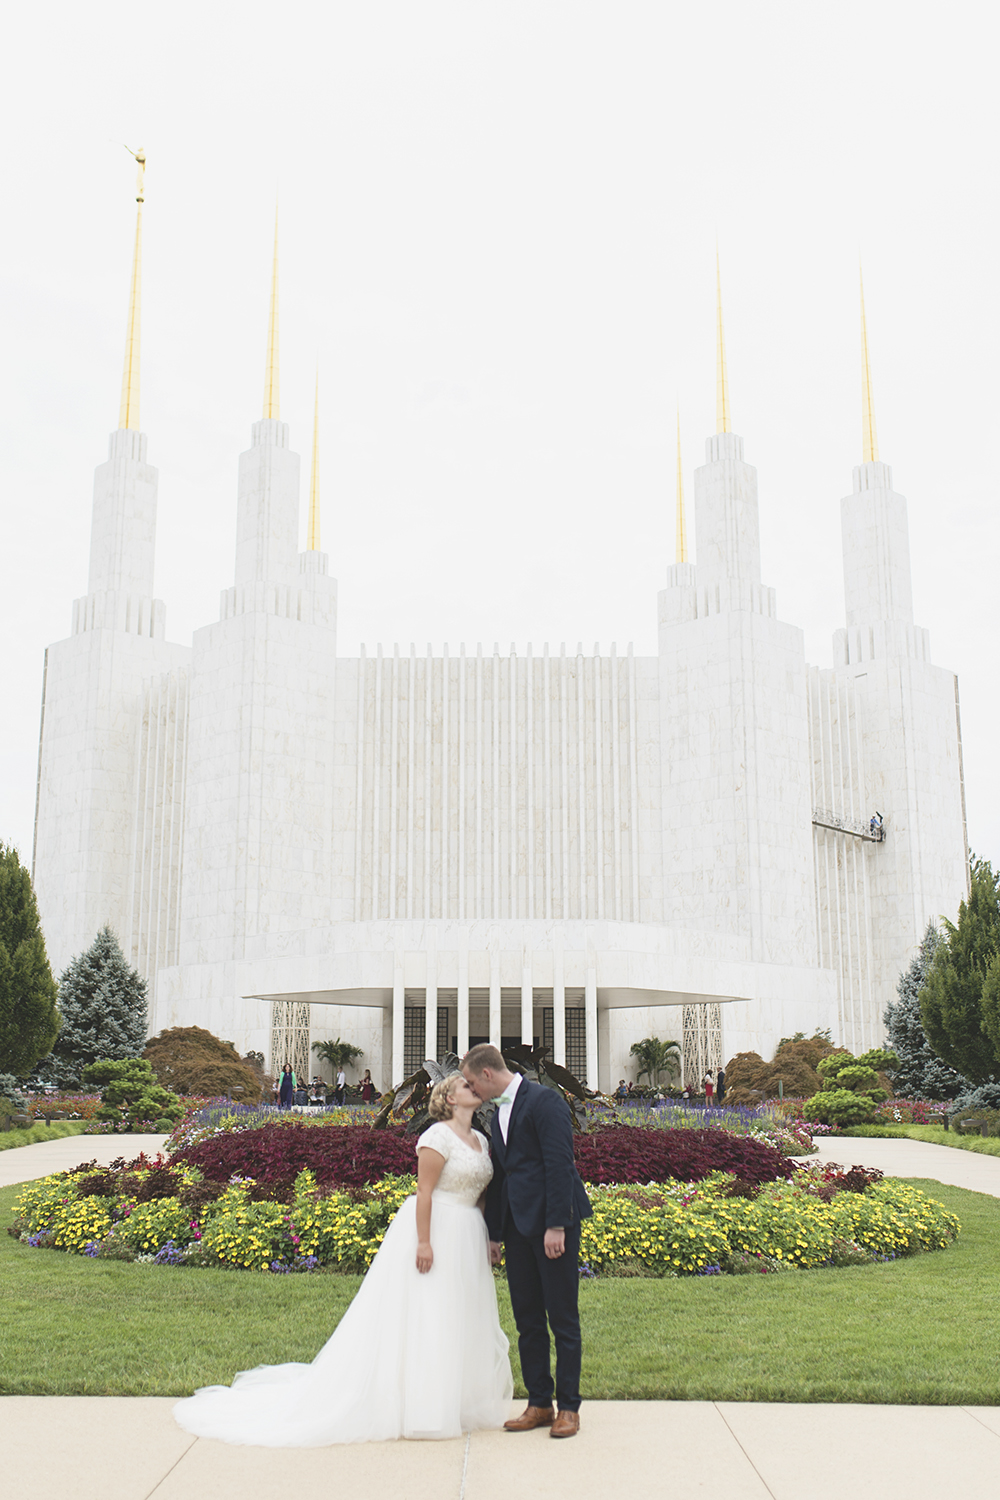 LDS Temple Mormon Wedding | Washington, DC, Wedding | Bride & groom portraits in front of temple